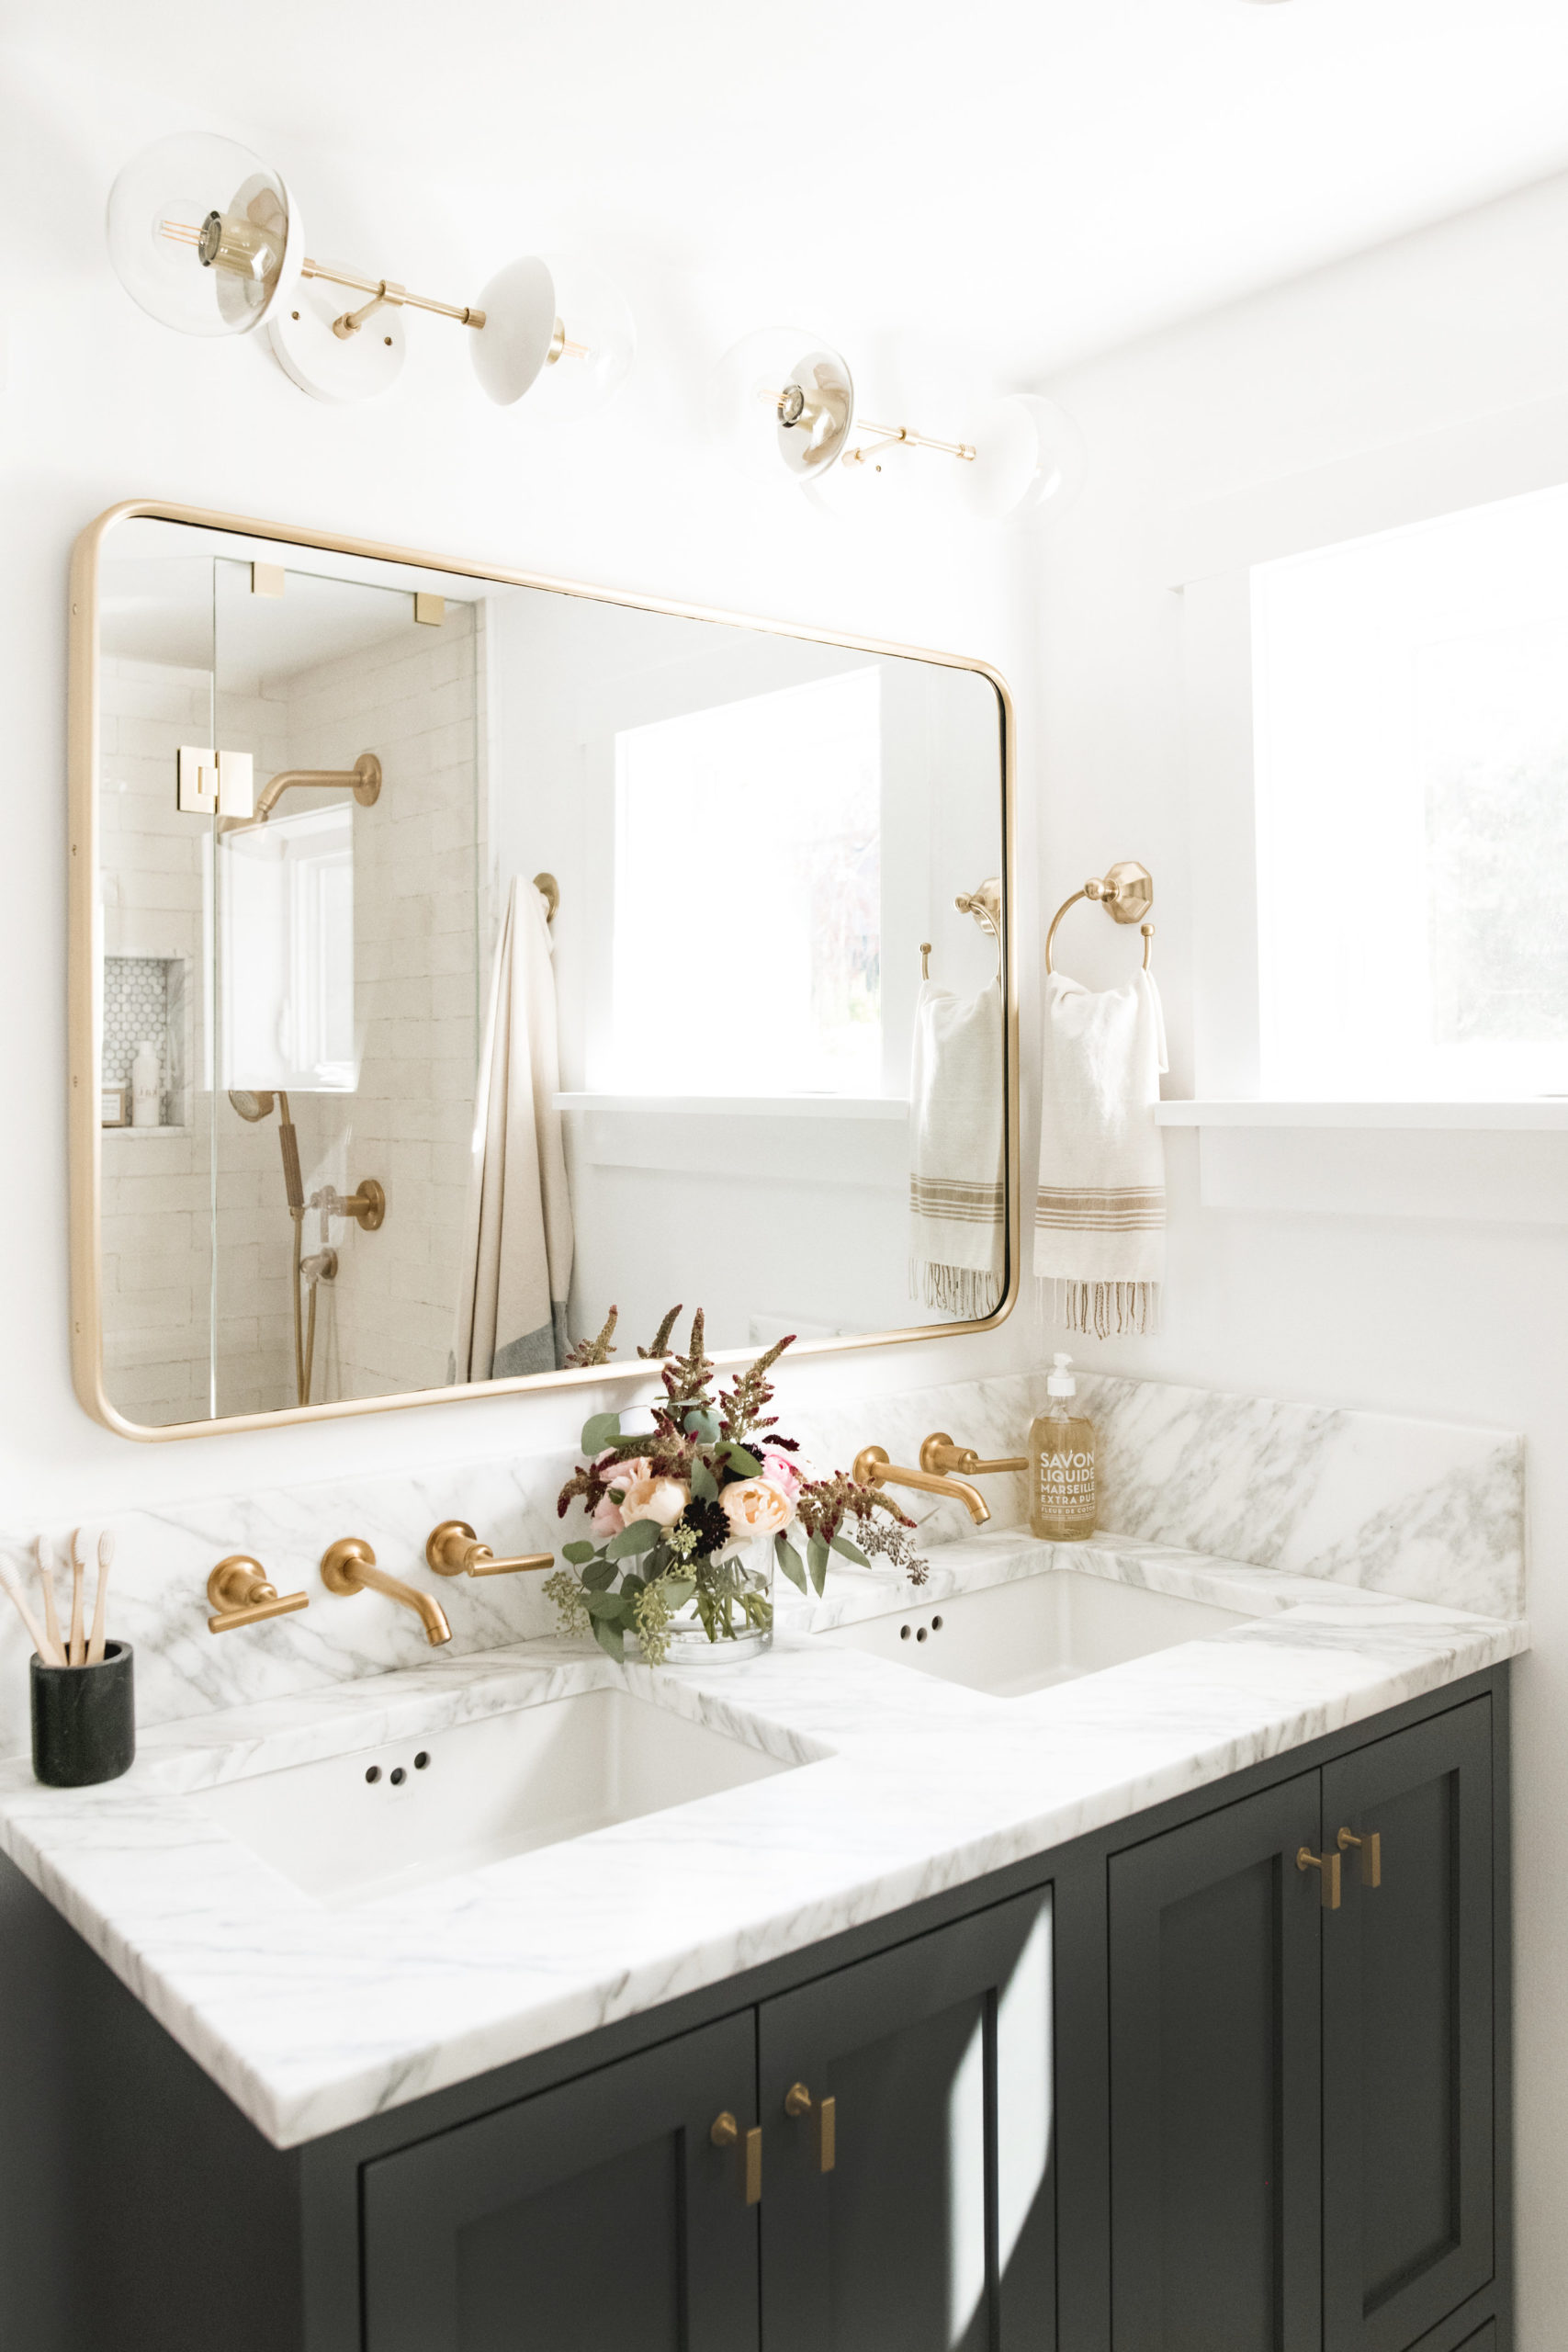 Bathroom mirrors with light styles and which is best for you?